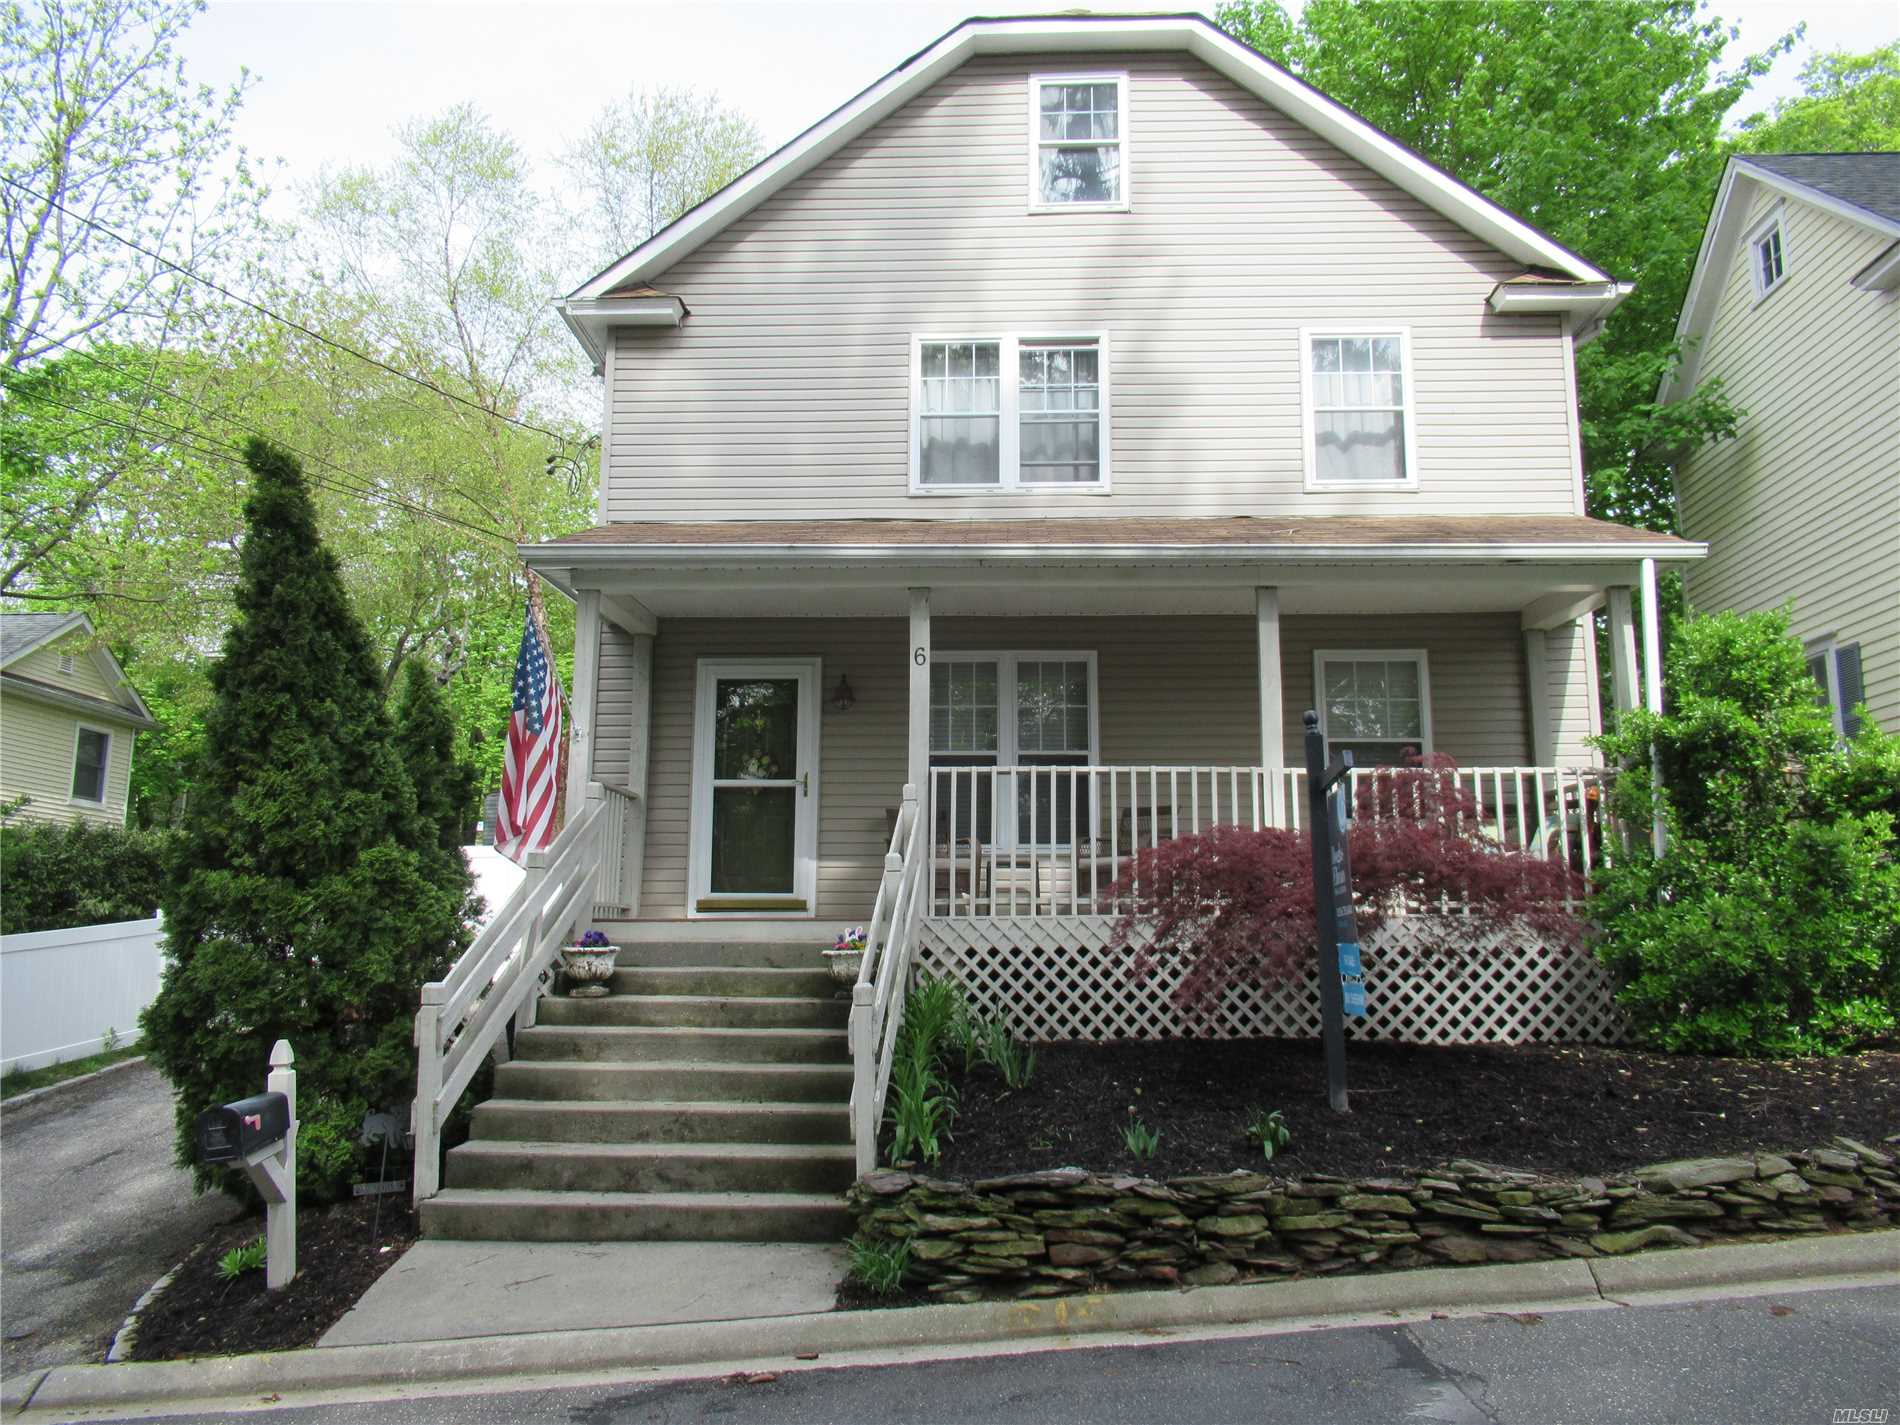 Taxes are currently being grieved. Beautifully maintained village colonial with open concept. sun-filled & spacious! Finished attic with office and bonus room. move in ready. Very large backyard! Award Winning Locust Valley School District. Close to train, village, golf & private beaches.